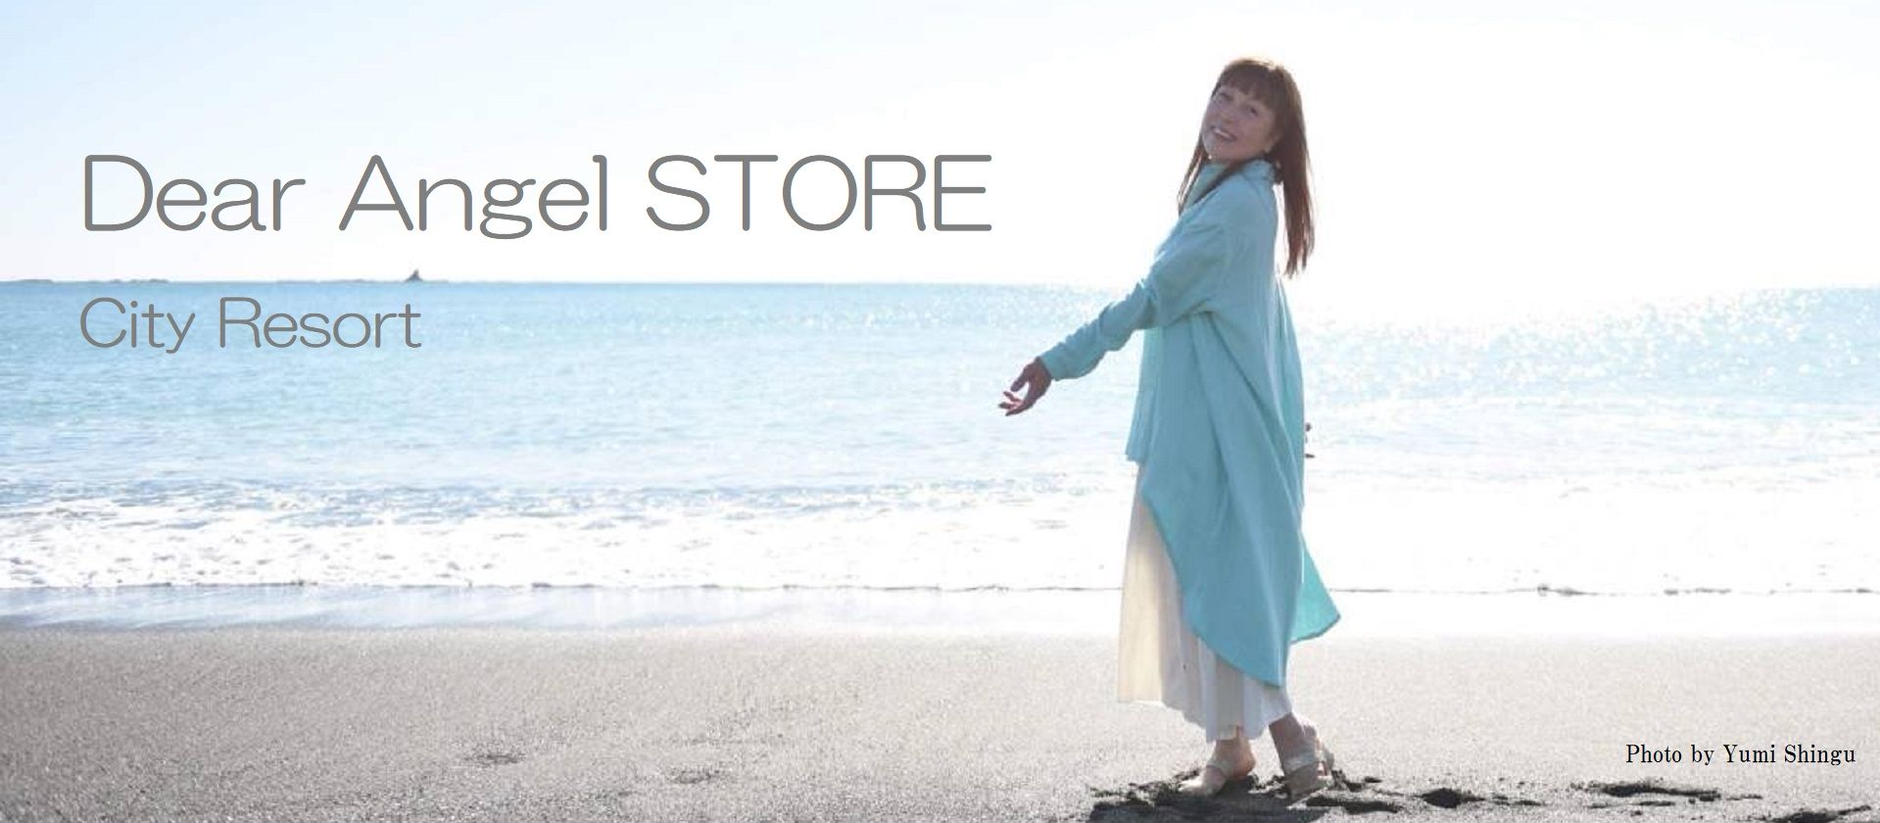 Dear Angel STORE